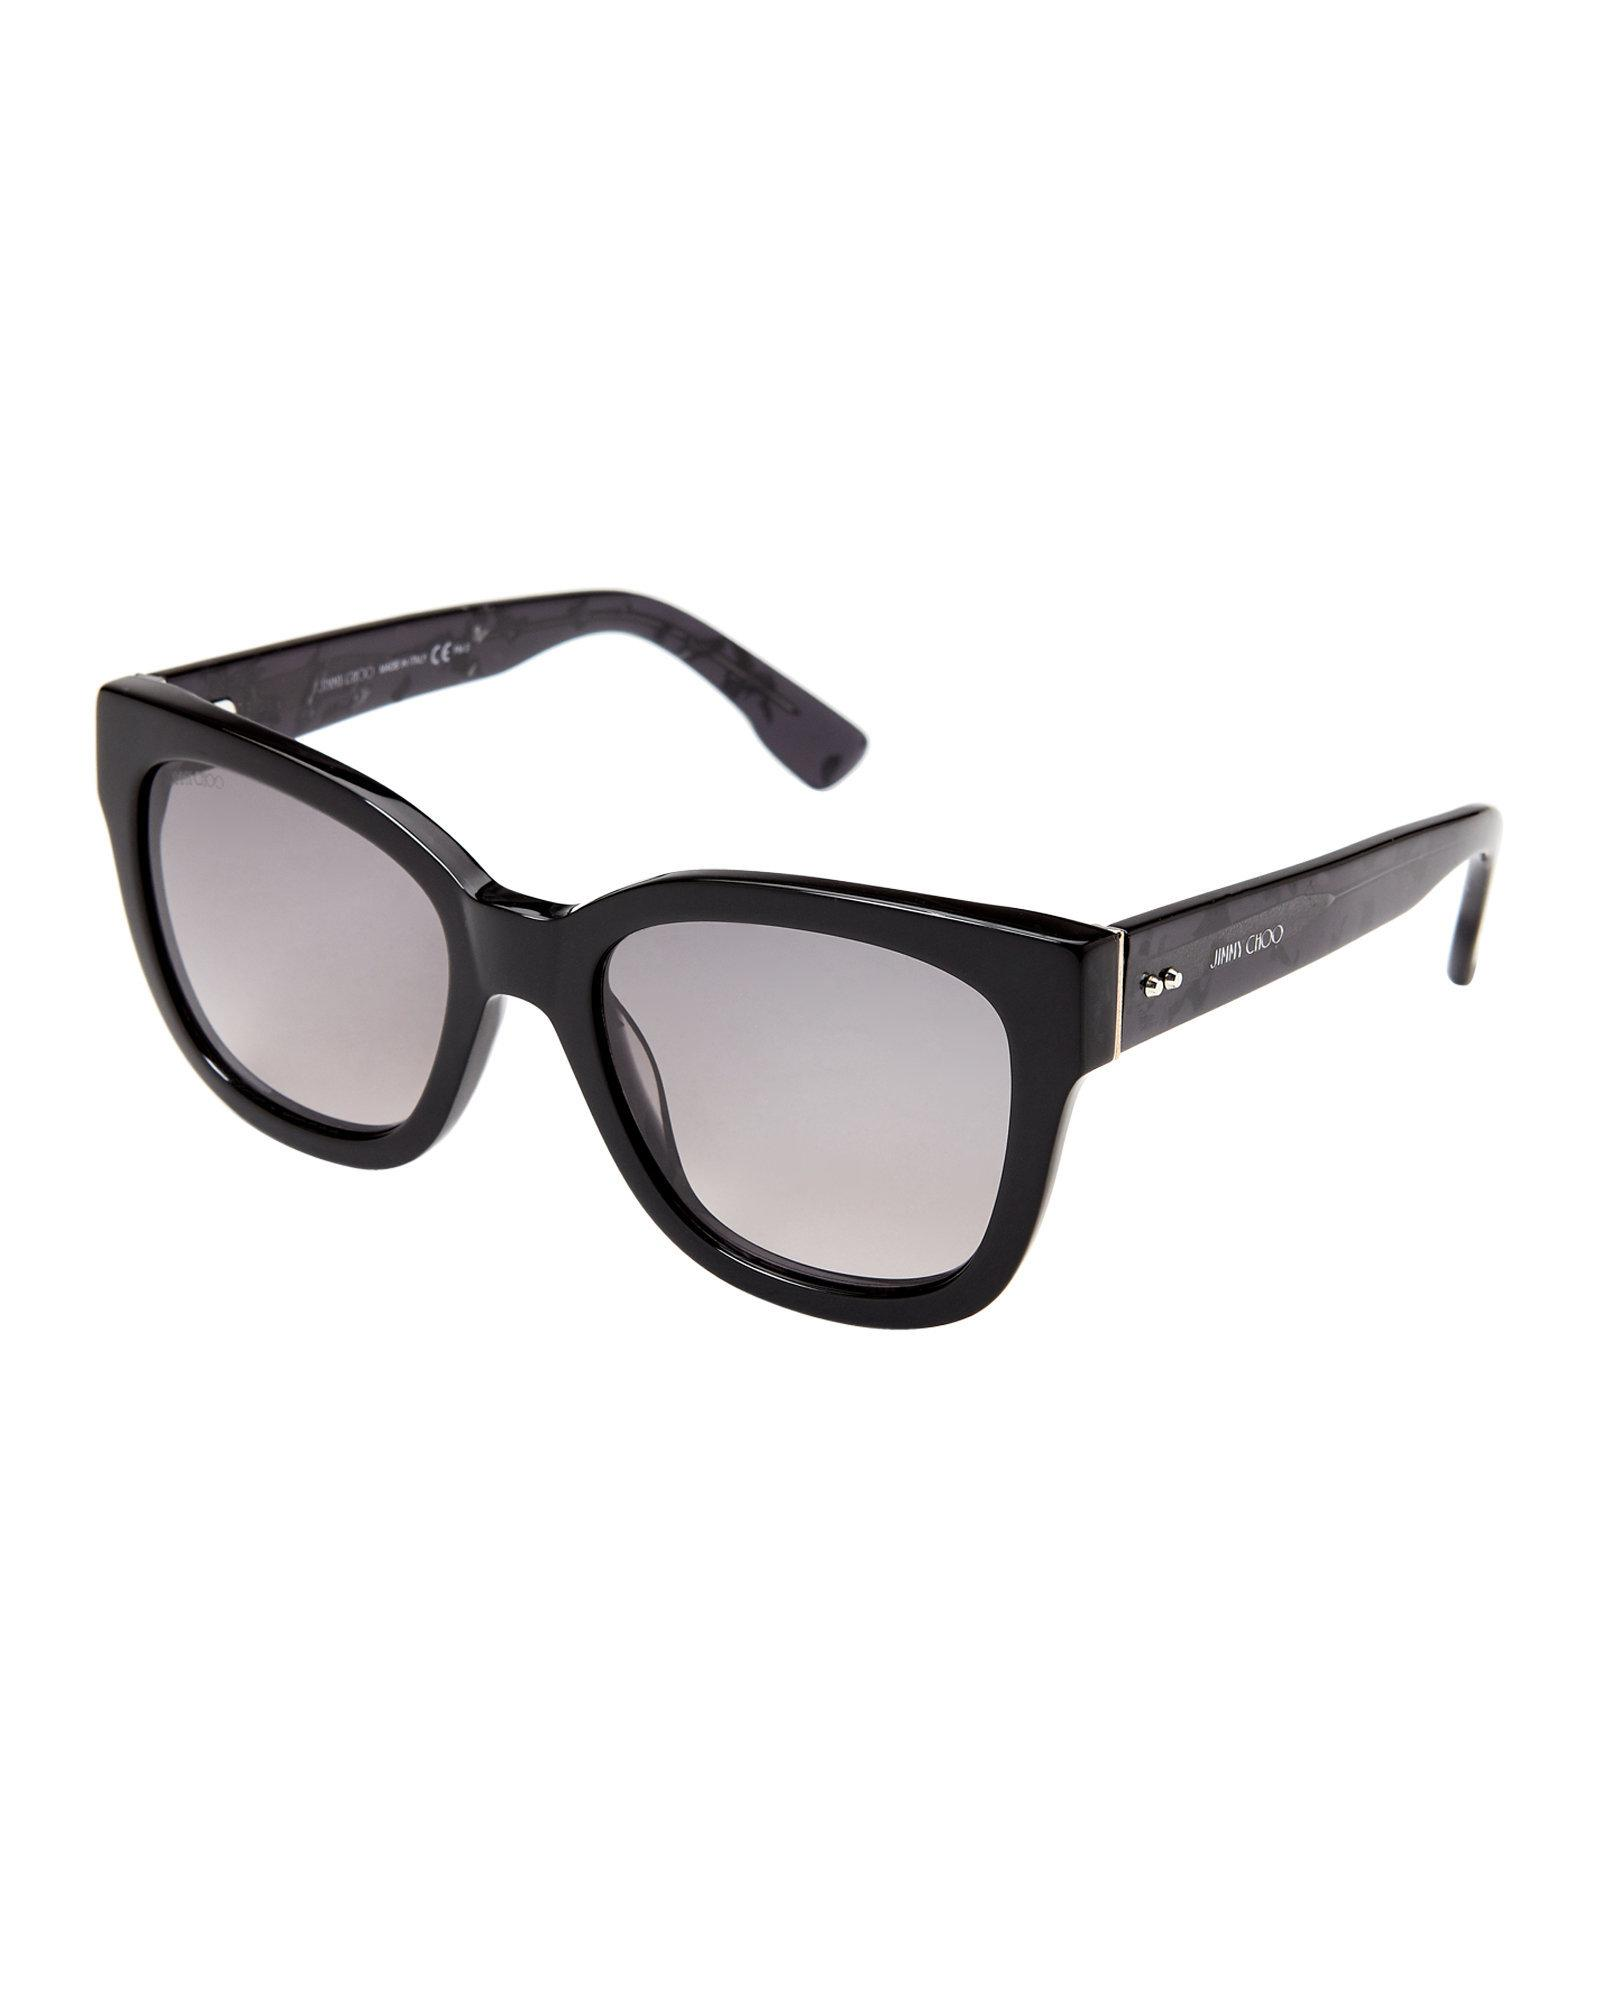 c165173c0fe Lyst - Jimmy Choo Black Otti Wayfarer Sunglasses in Black